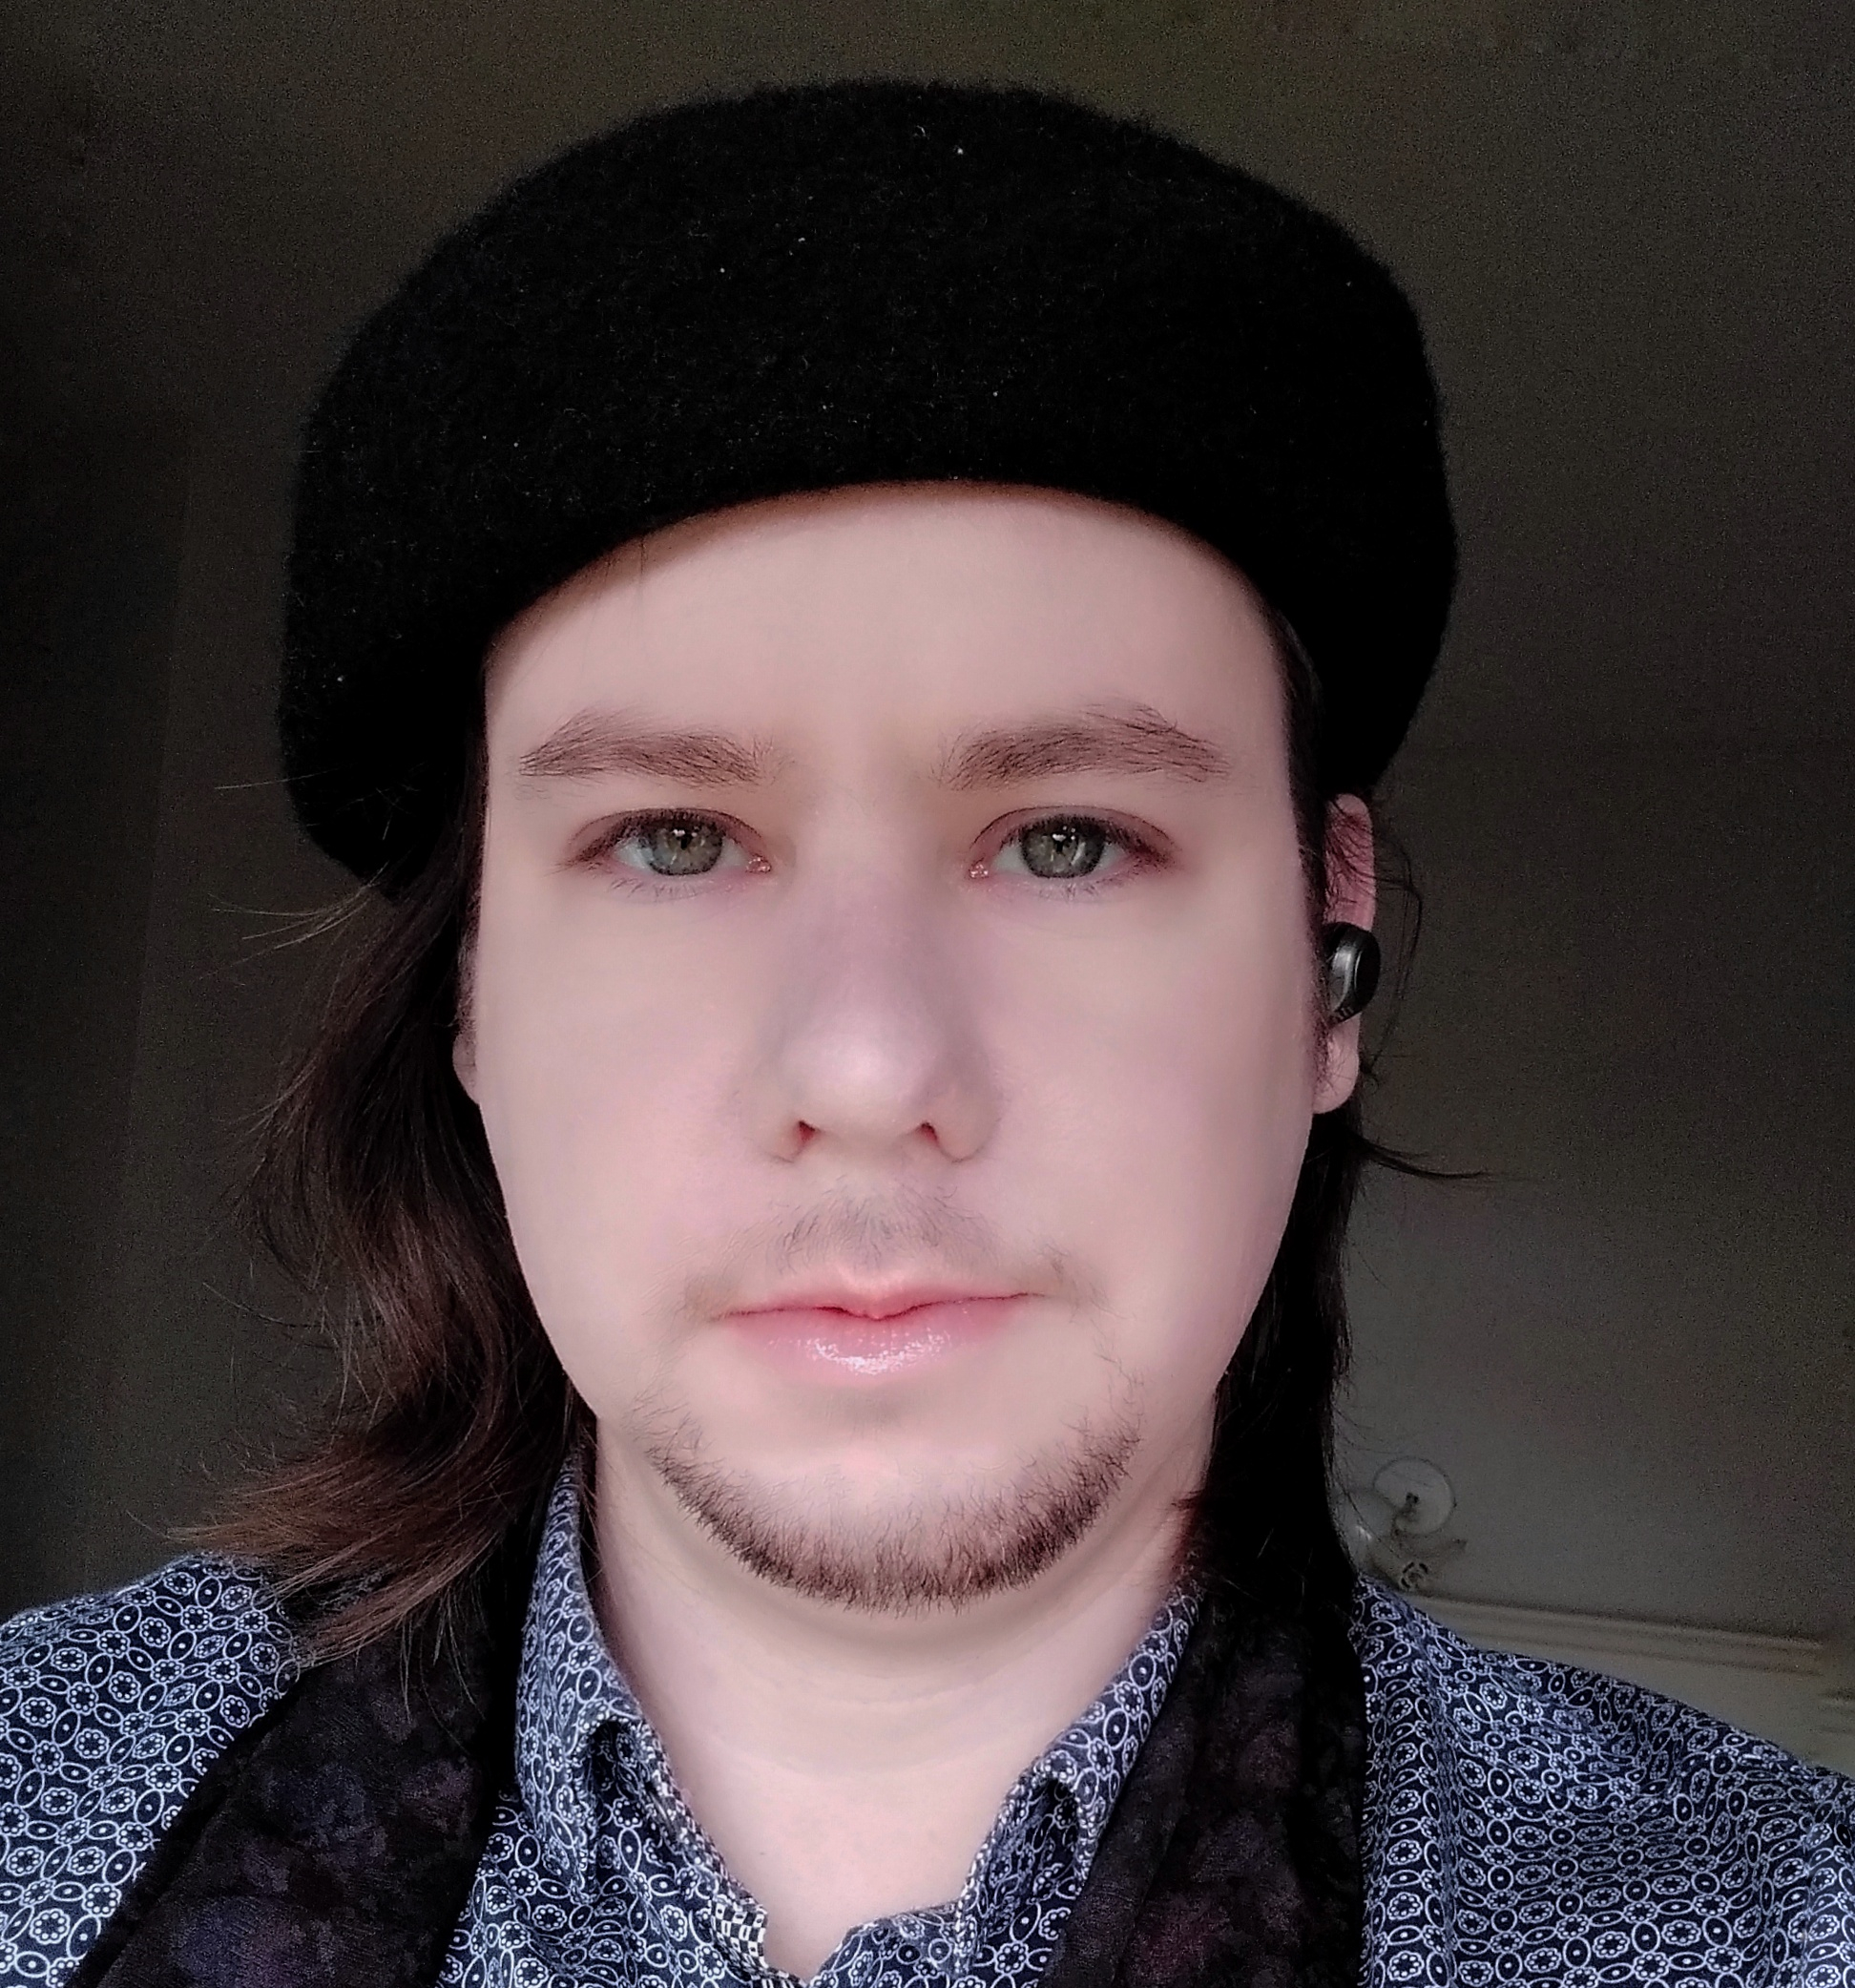 A Photo of S. Jonathon O'Donnell, wearing a black beret and purple scarf.